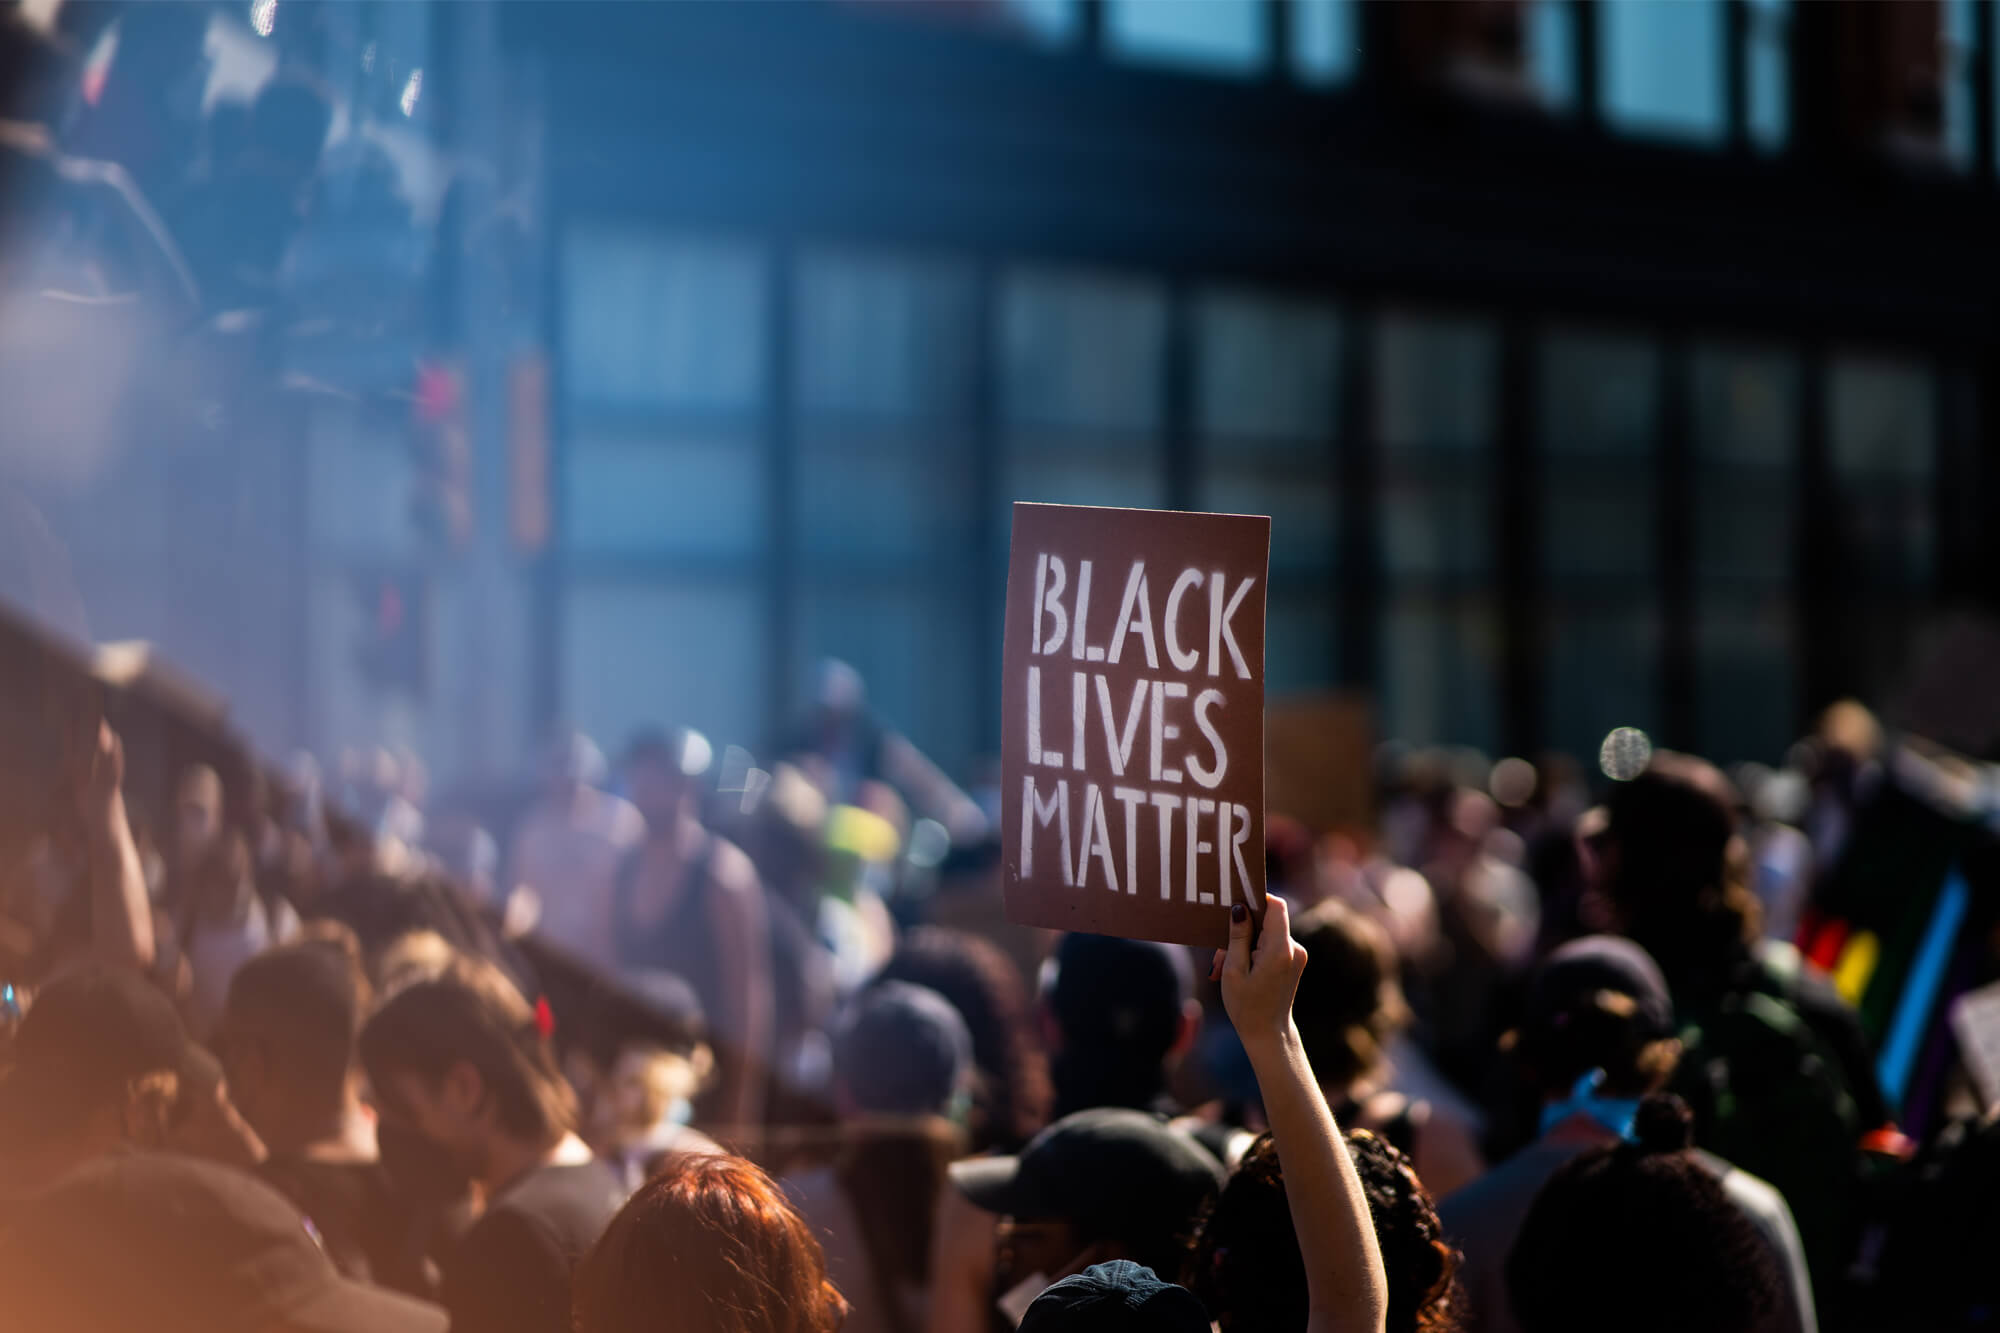 An image of the Black Lives Matter march - people marching, with someone holding up a Black Lives Matter placard.